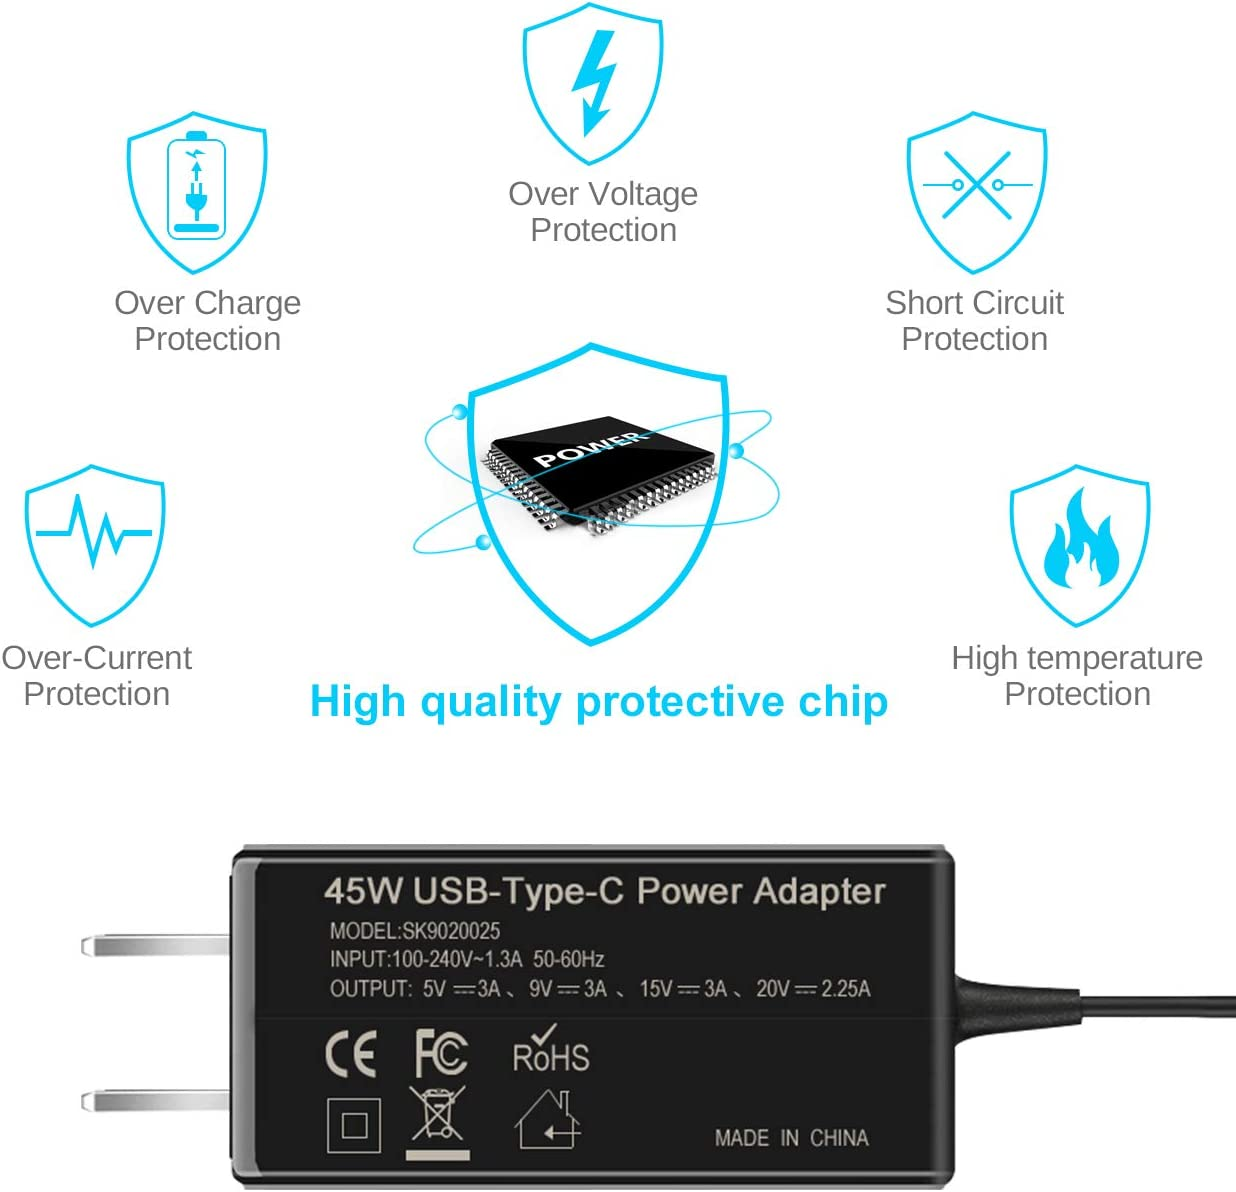 USB C Quick Charger, 45W Type C Adapter Power Cord for Asus Chromebook C302 C302C C302CA ZenBook Flip MacBook 12 inch/Pro/Air 2018, Dell XPS, ...